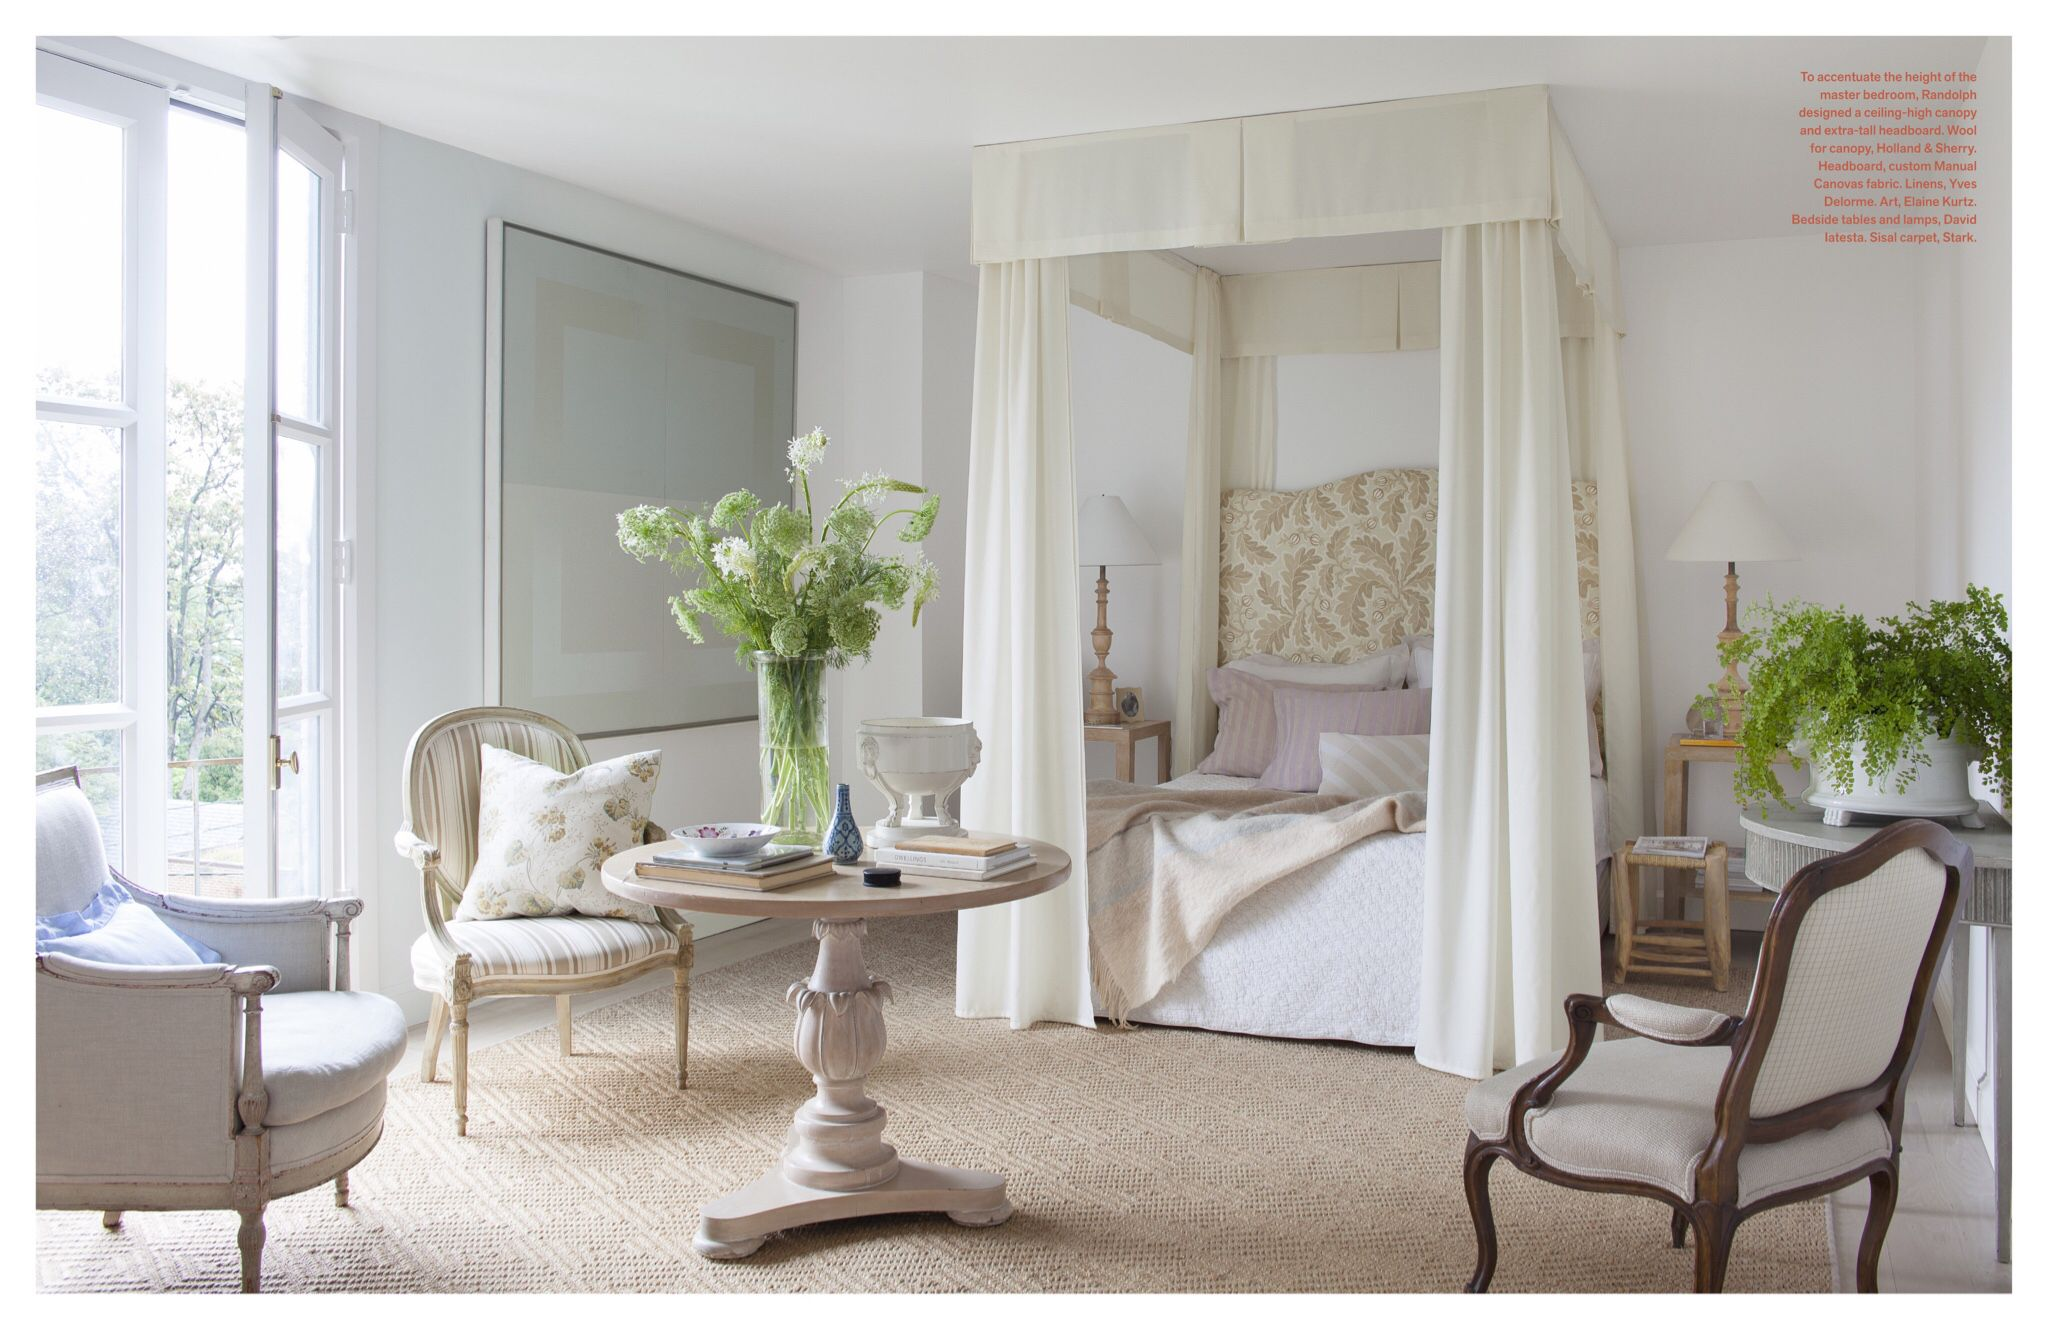 I saw this in the Mar/Apr 2013 issue of @VERANDAmag.   http://bit.ly/1iL20bU